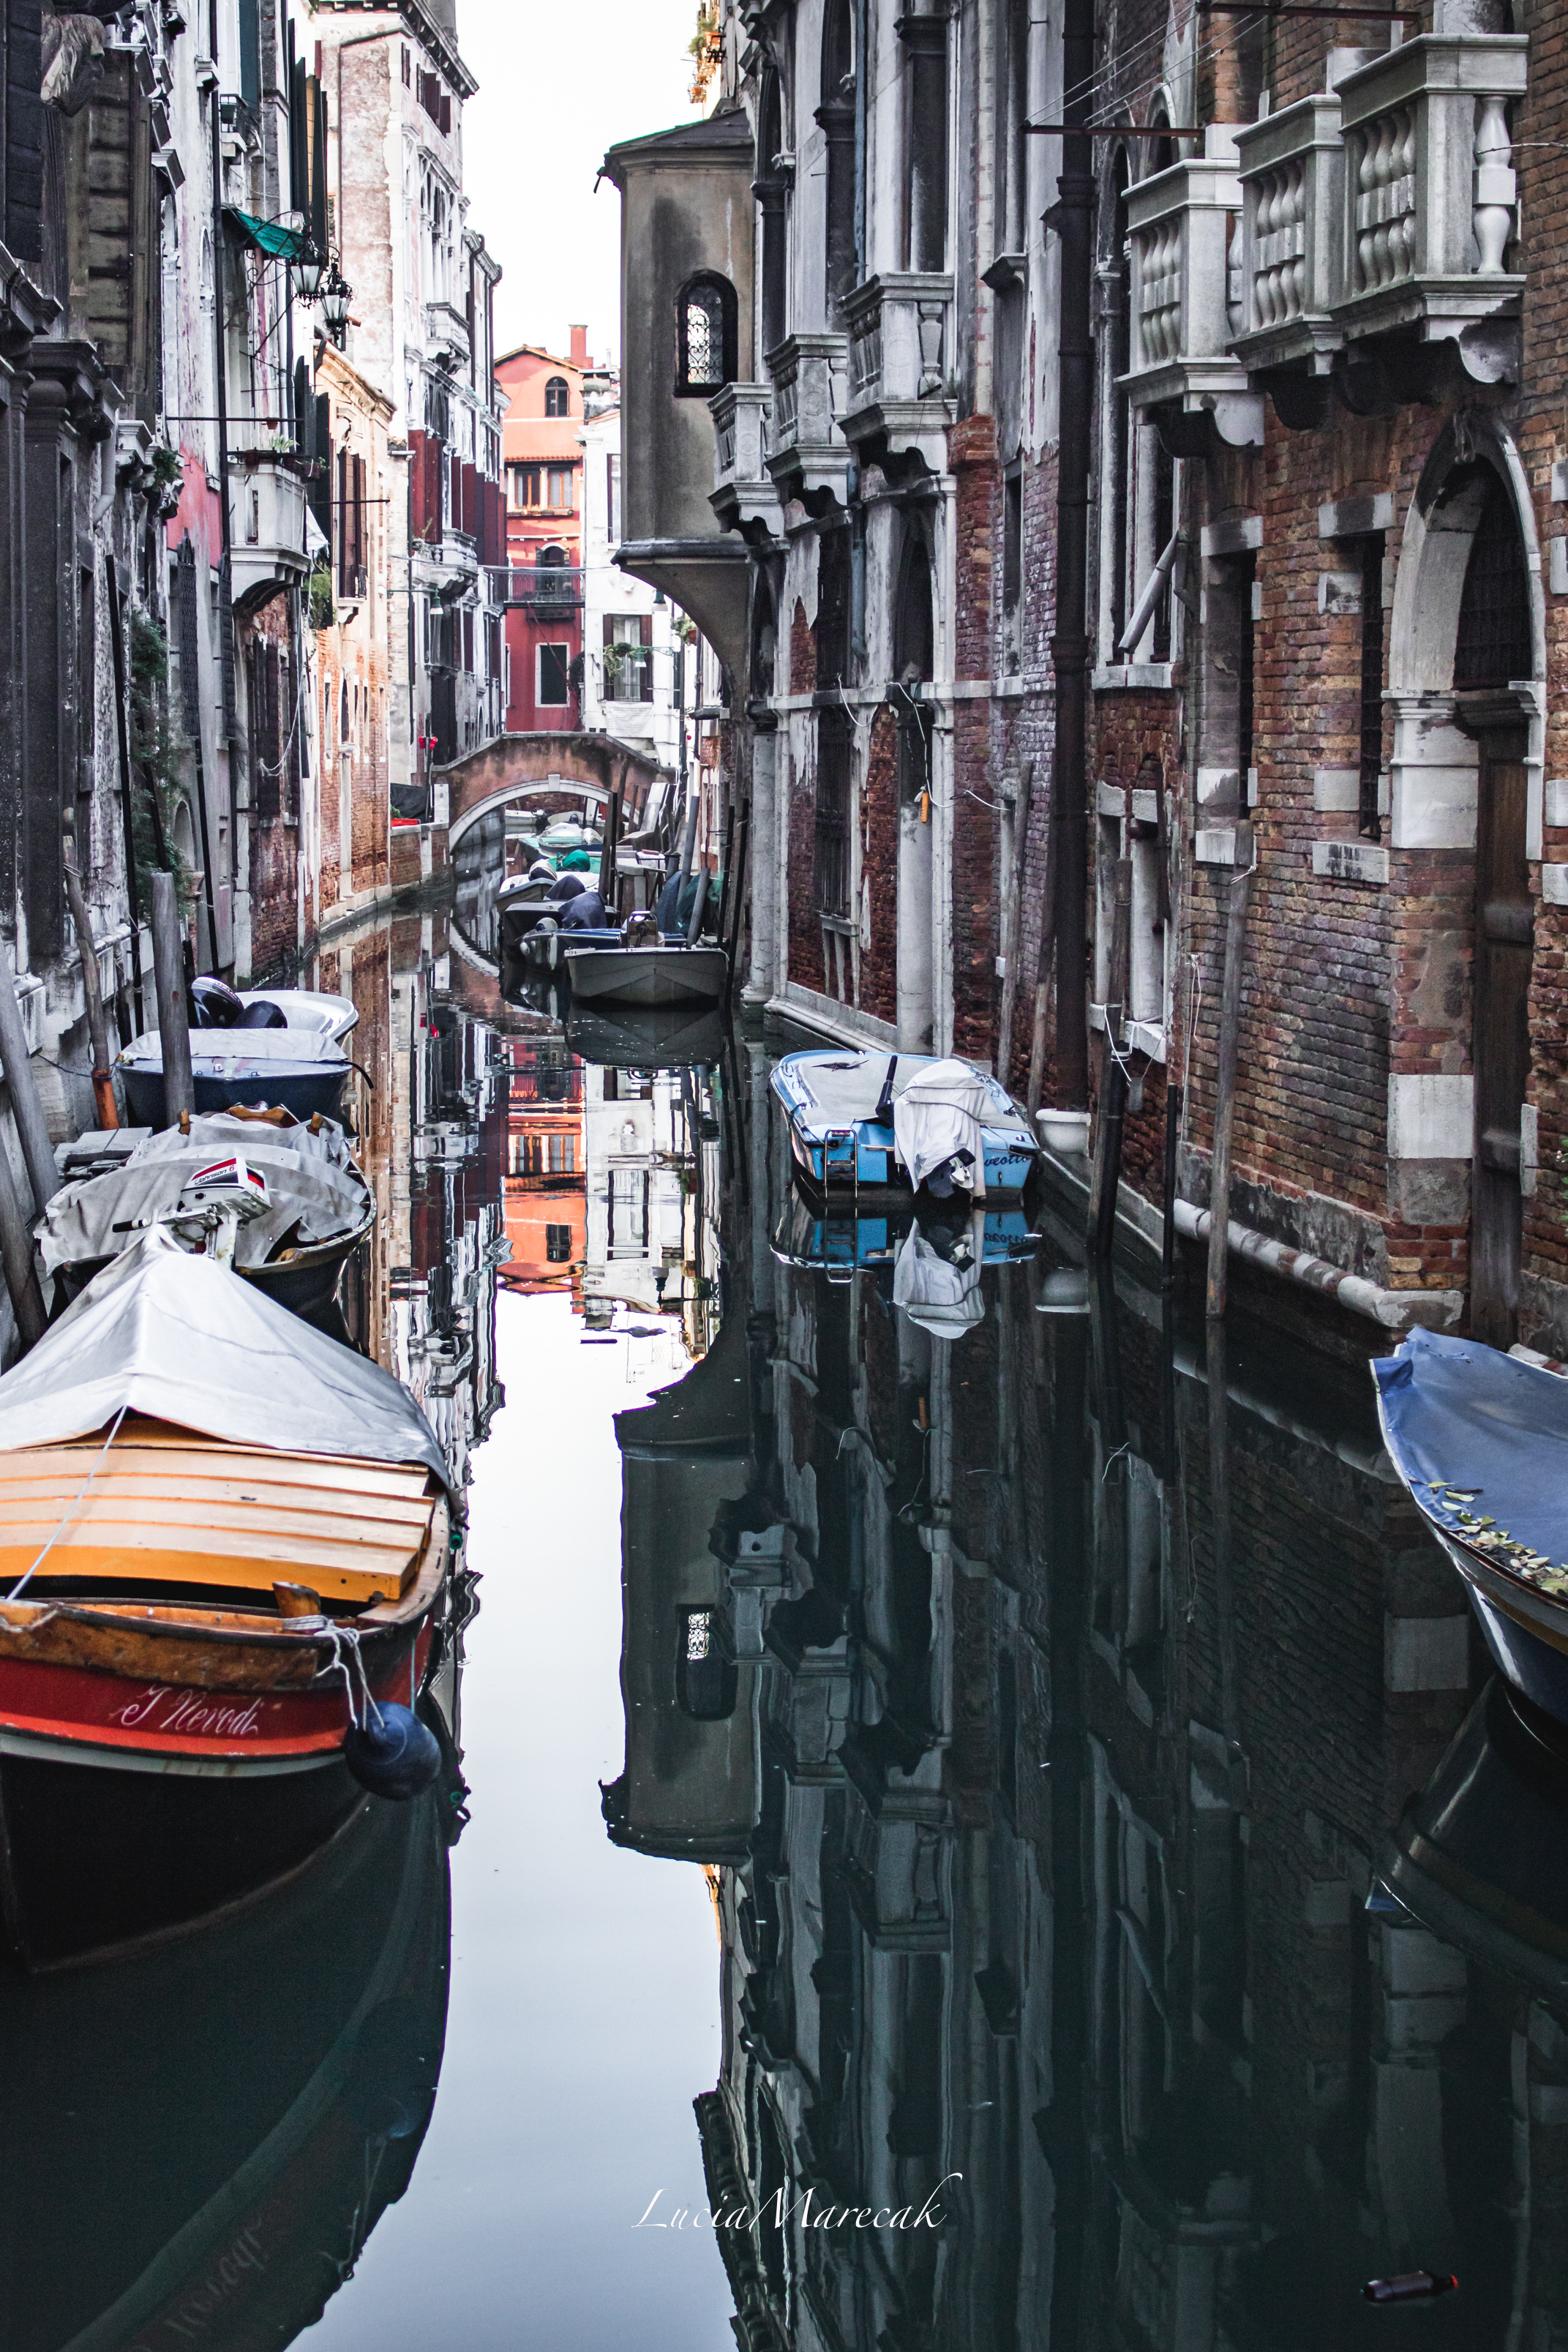 Venice inside city | LuciaMarecak